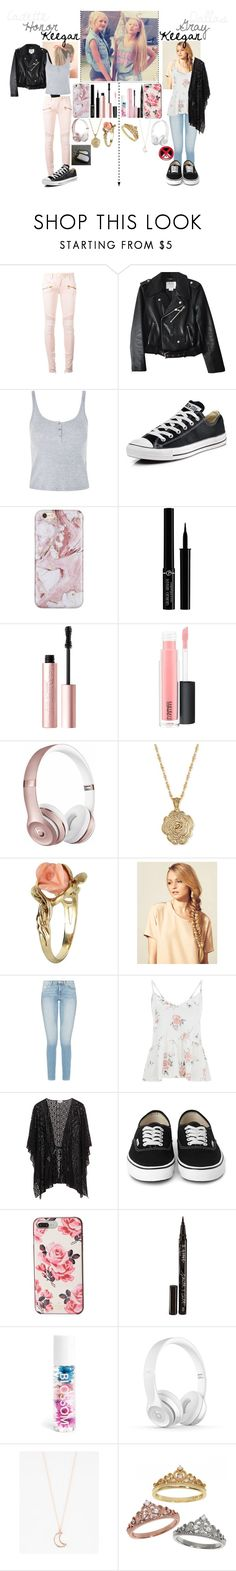 """Two stars are brighter than one"" by frootloop16 ❤ liked on Polyvore featuring Balmain, Kate Spade, Topshop, Converse, Giorgio Armani, Too Faced Cosmetics, MAC Cosmetics, Beats by Dr. Dre, 2028 and Vintage"